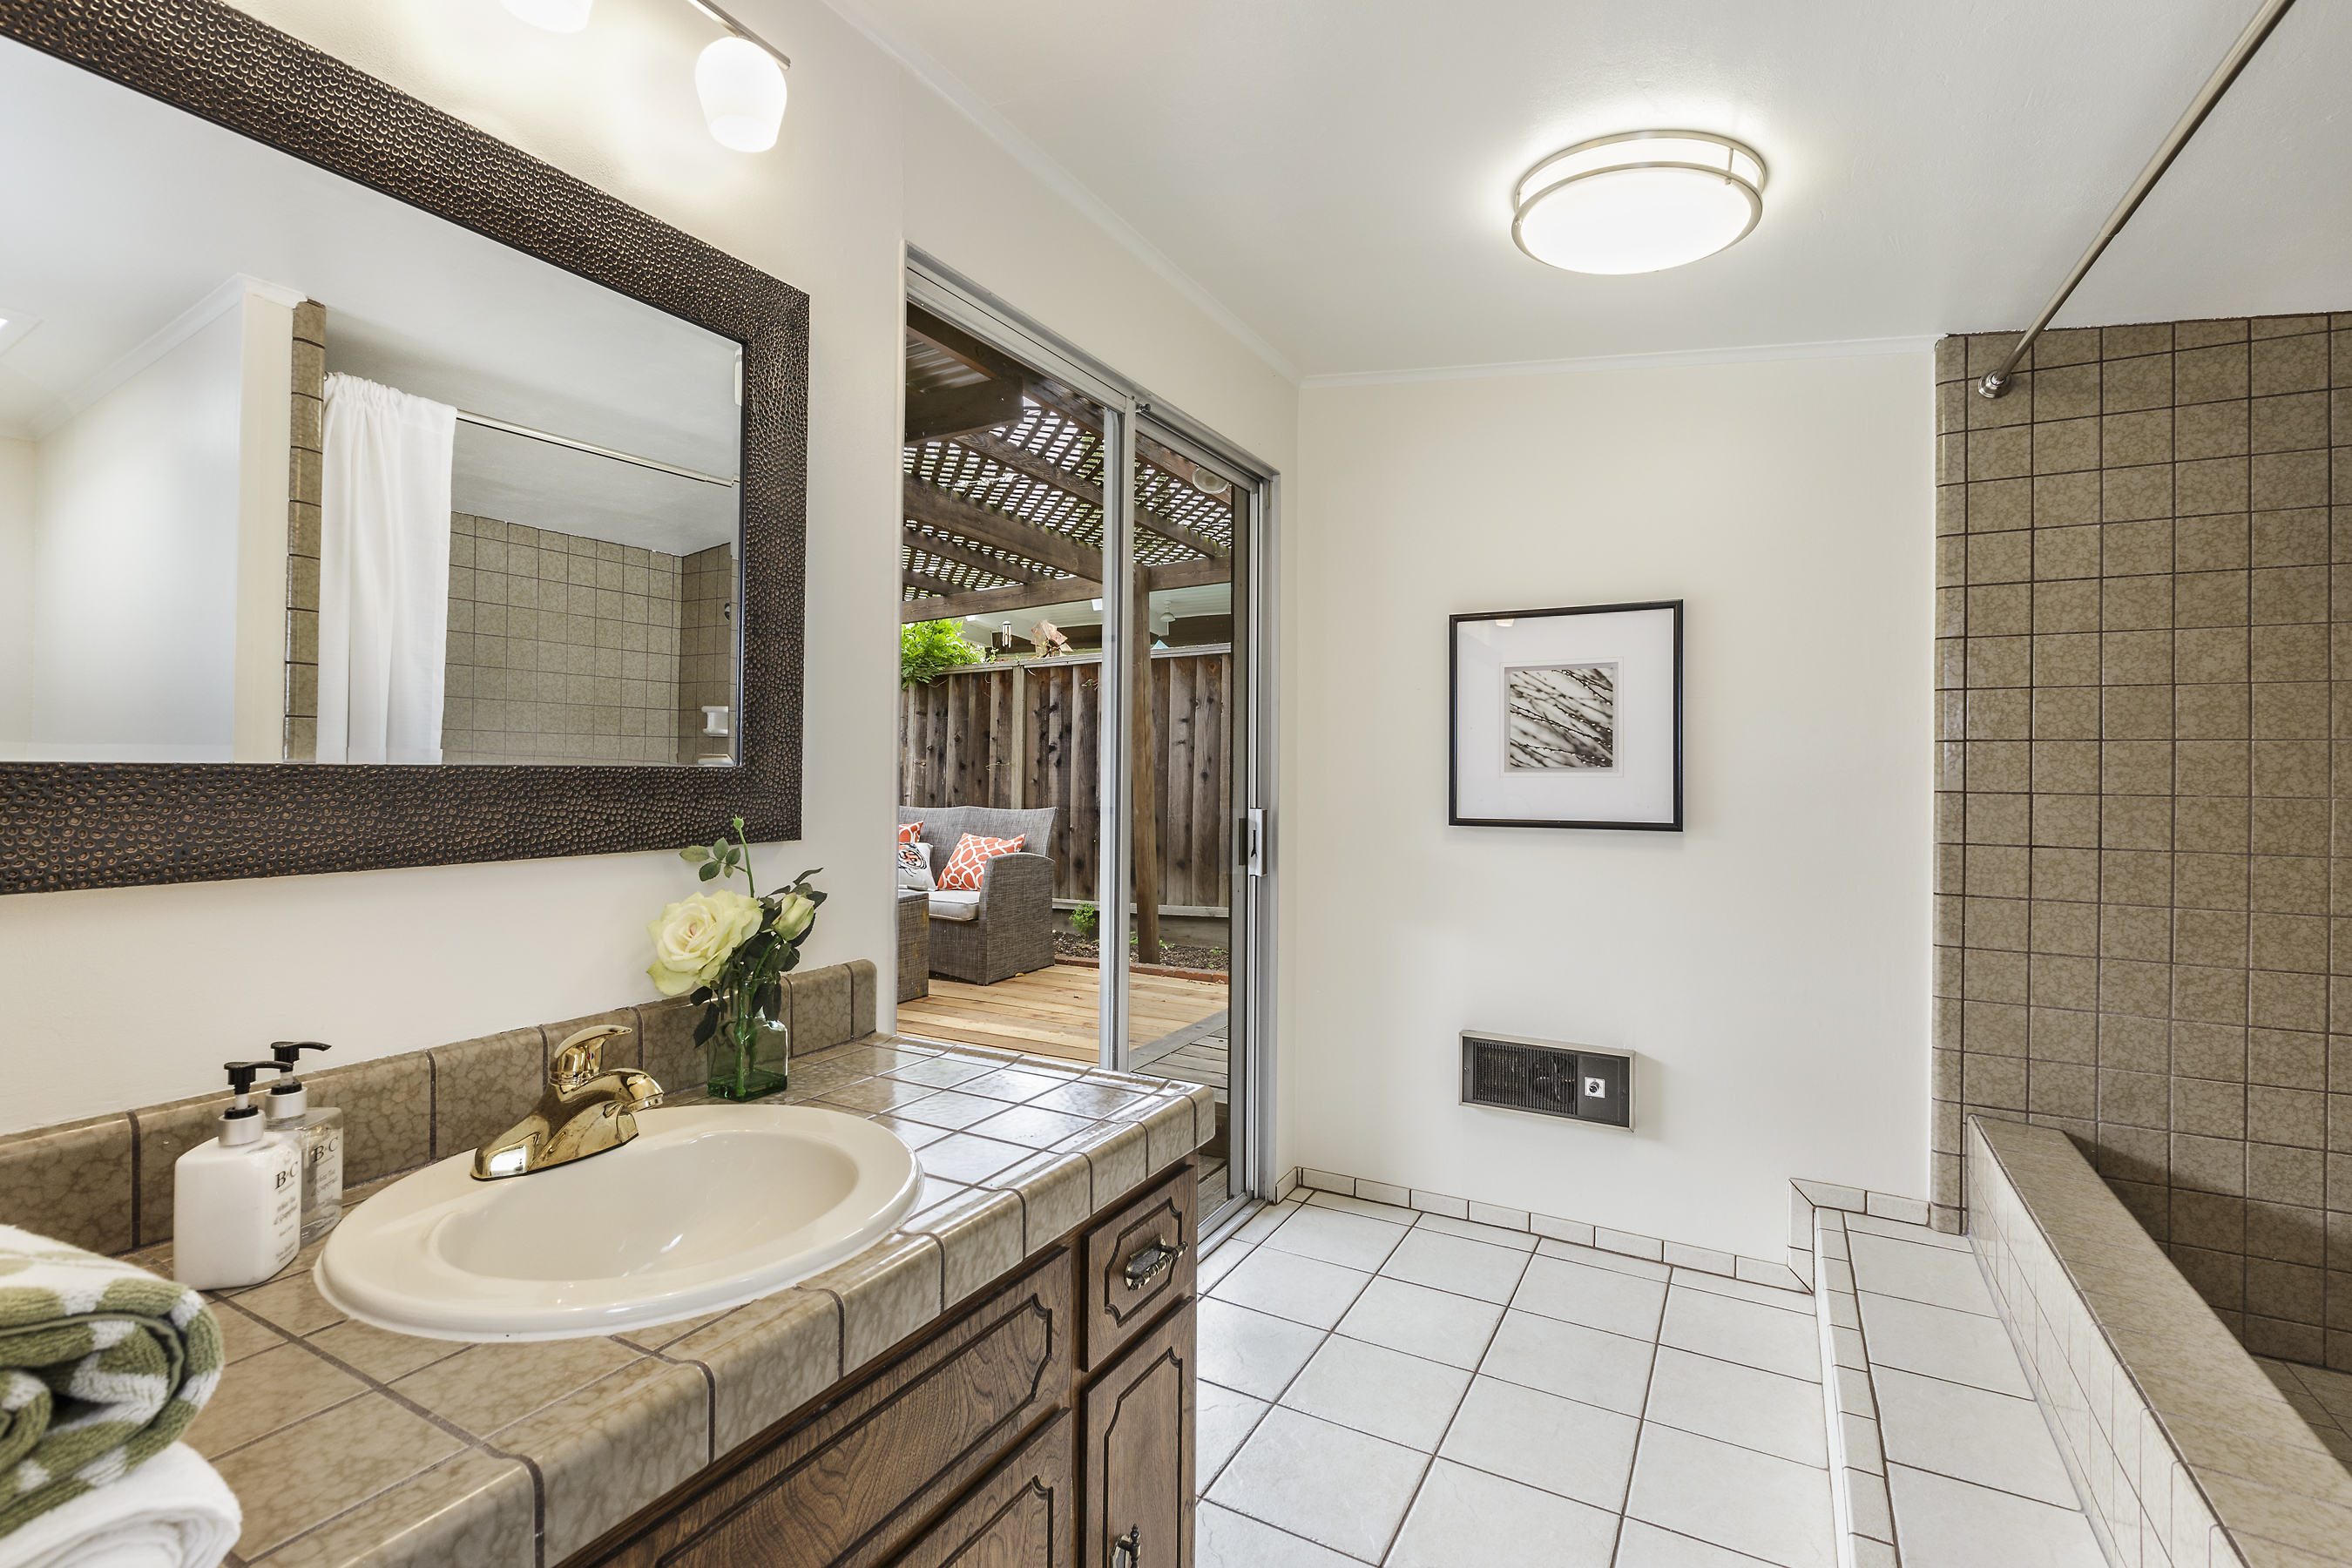 14-172-Atherwood-1bath-high-res